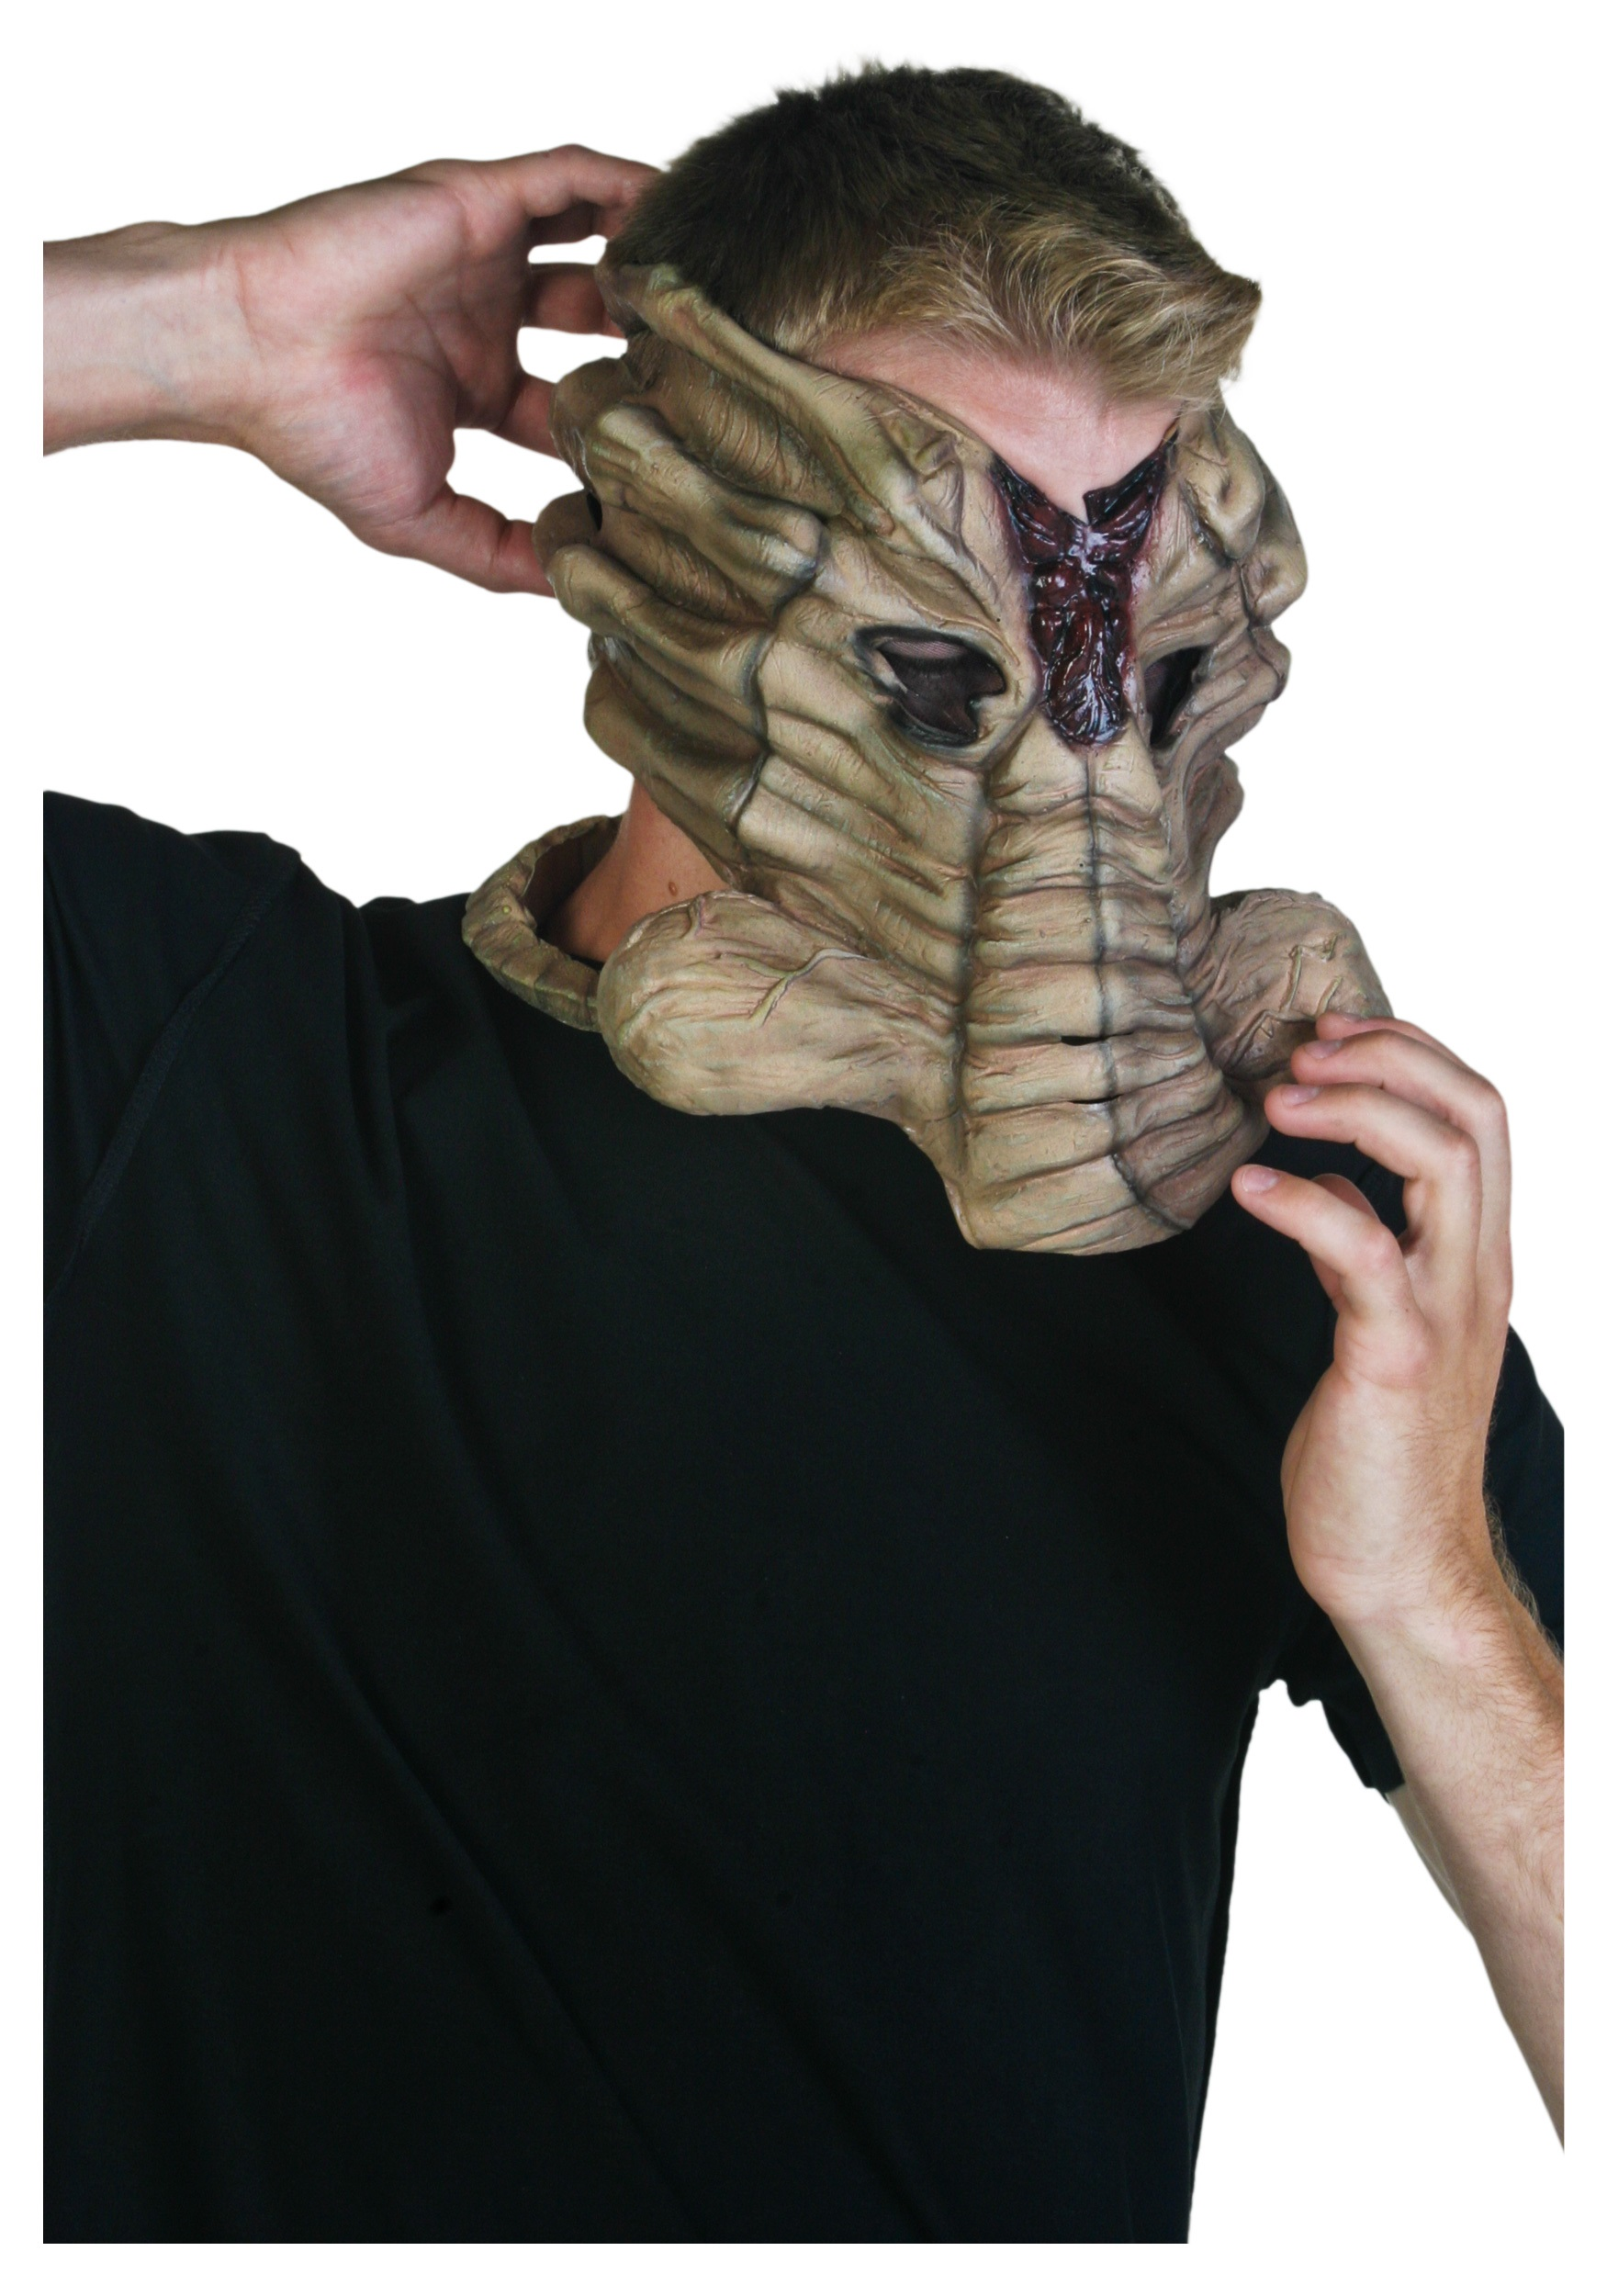 Alien Costumes - Adult, Kids Alien Costume